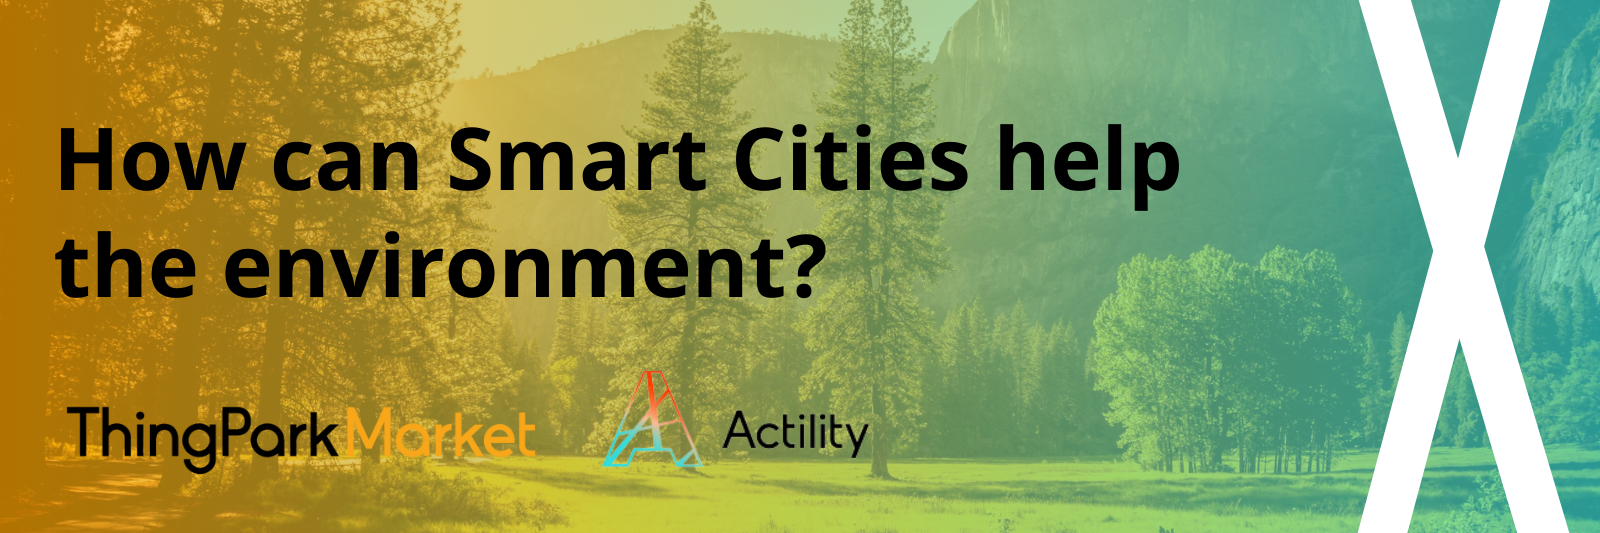 How can Smart Cities help the environment?